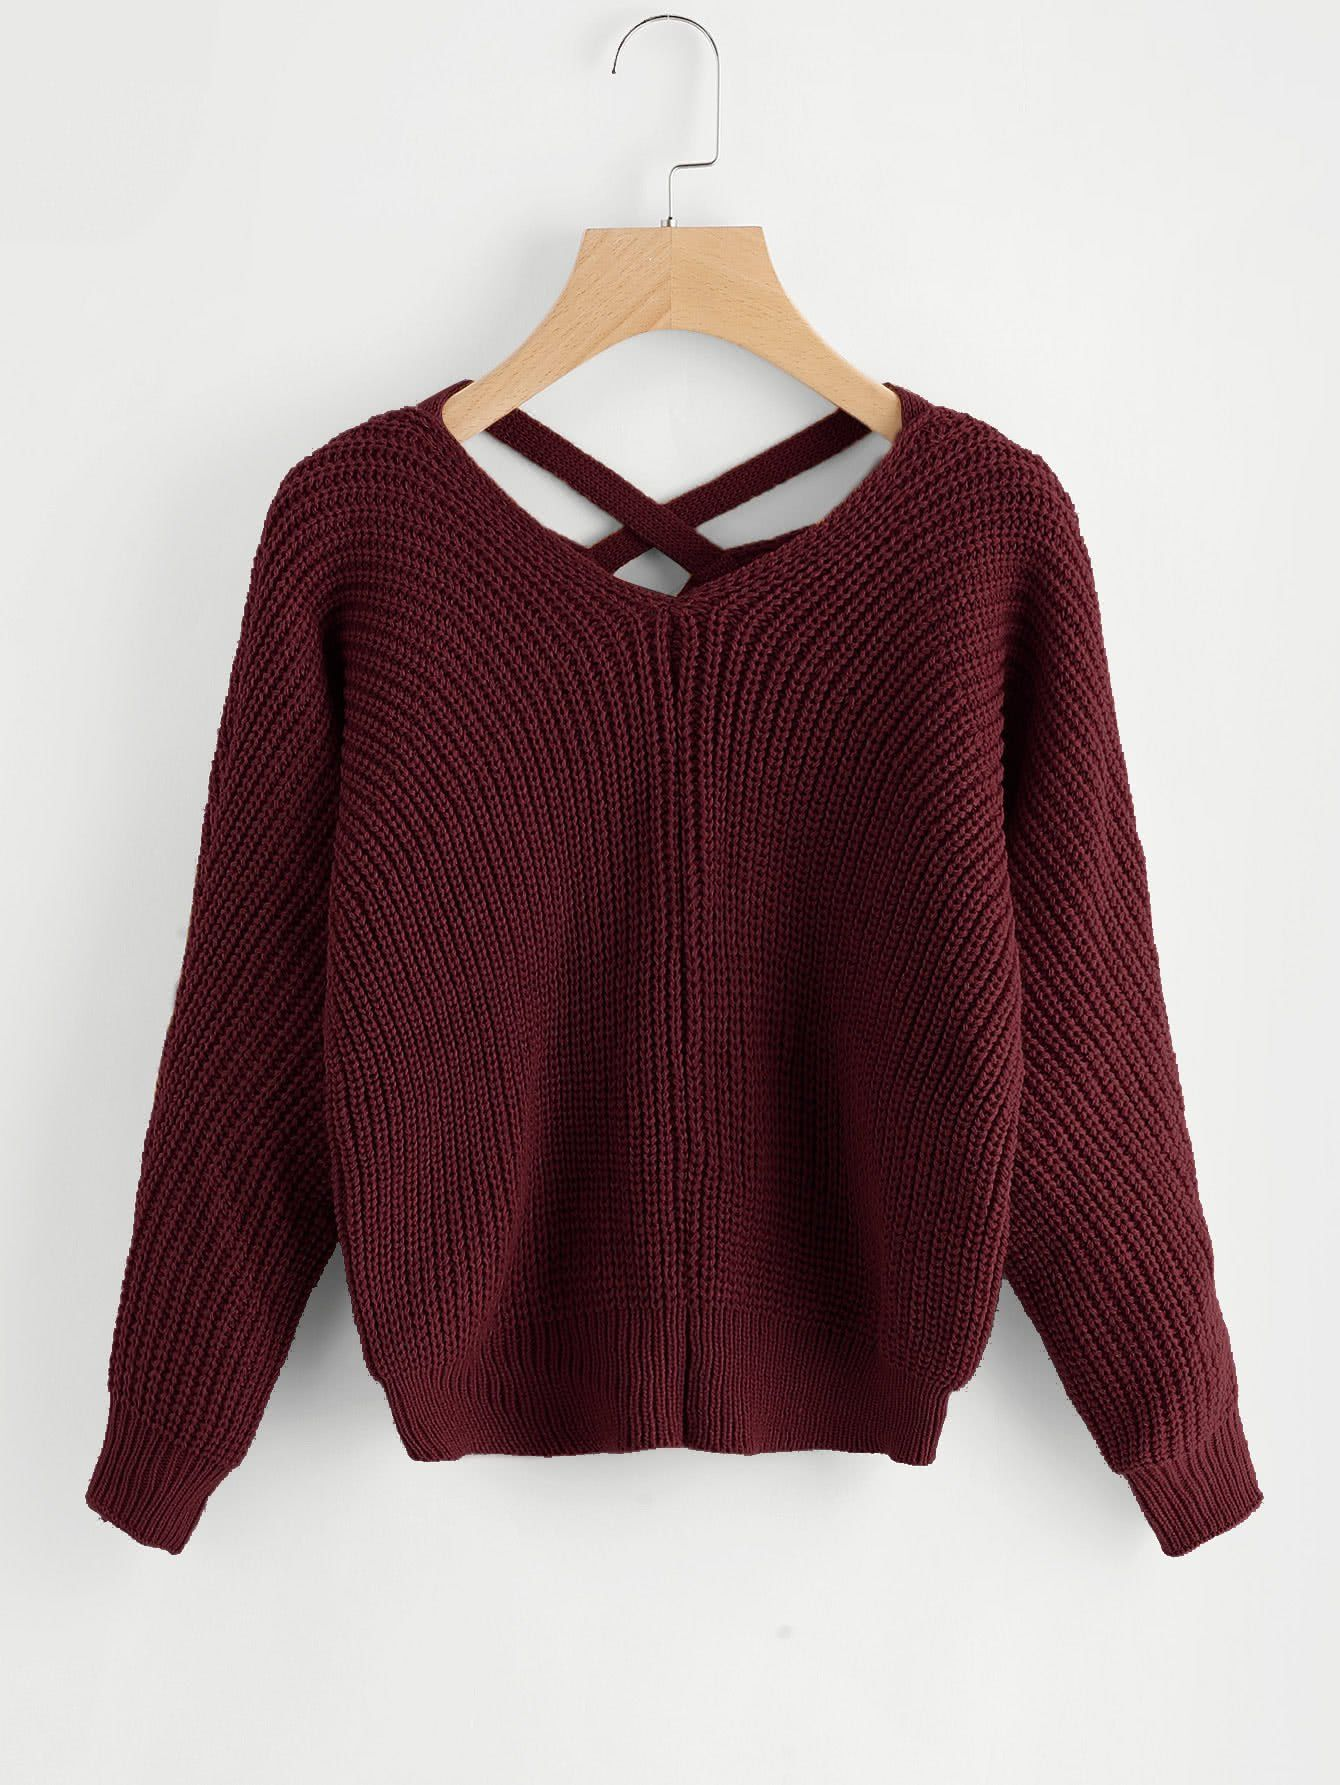 dbfc99b0e4c2f Material  Acrylic Color  Burgundy Pattern Type  Plain Neckline  V Neck  Style  Casual